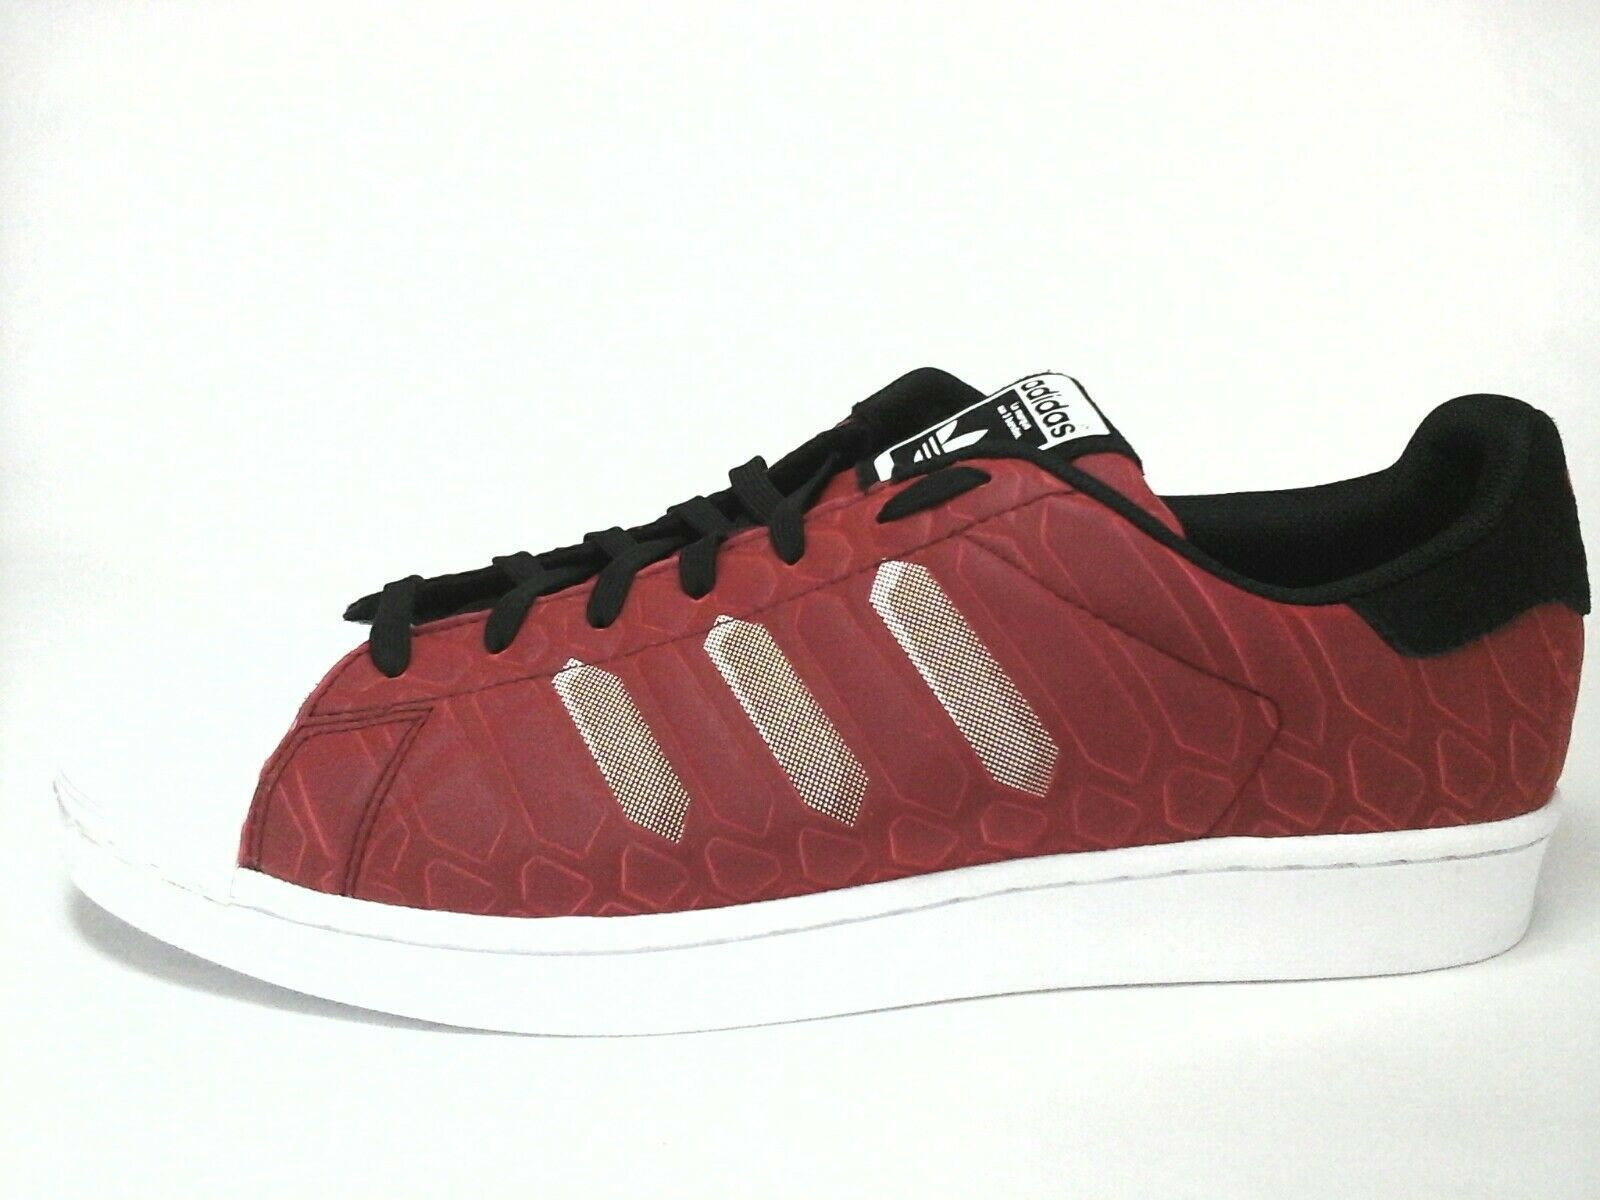 ADIDAS SUPERSTAR Mens SHOES Red/Black Snake Sneakers Clamshell US 12 /3